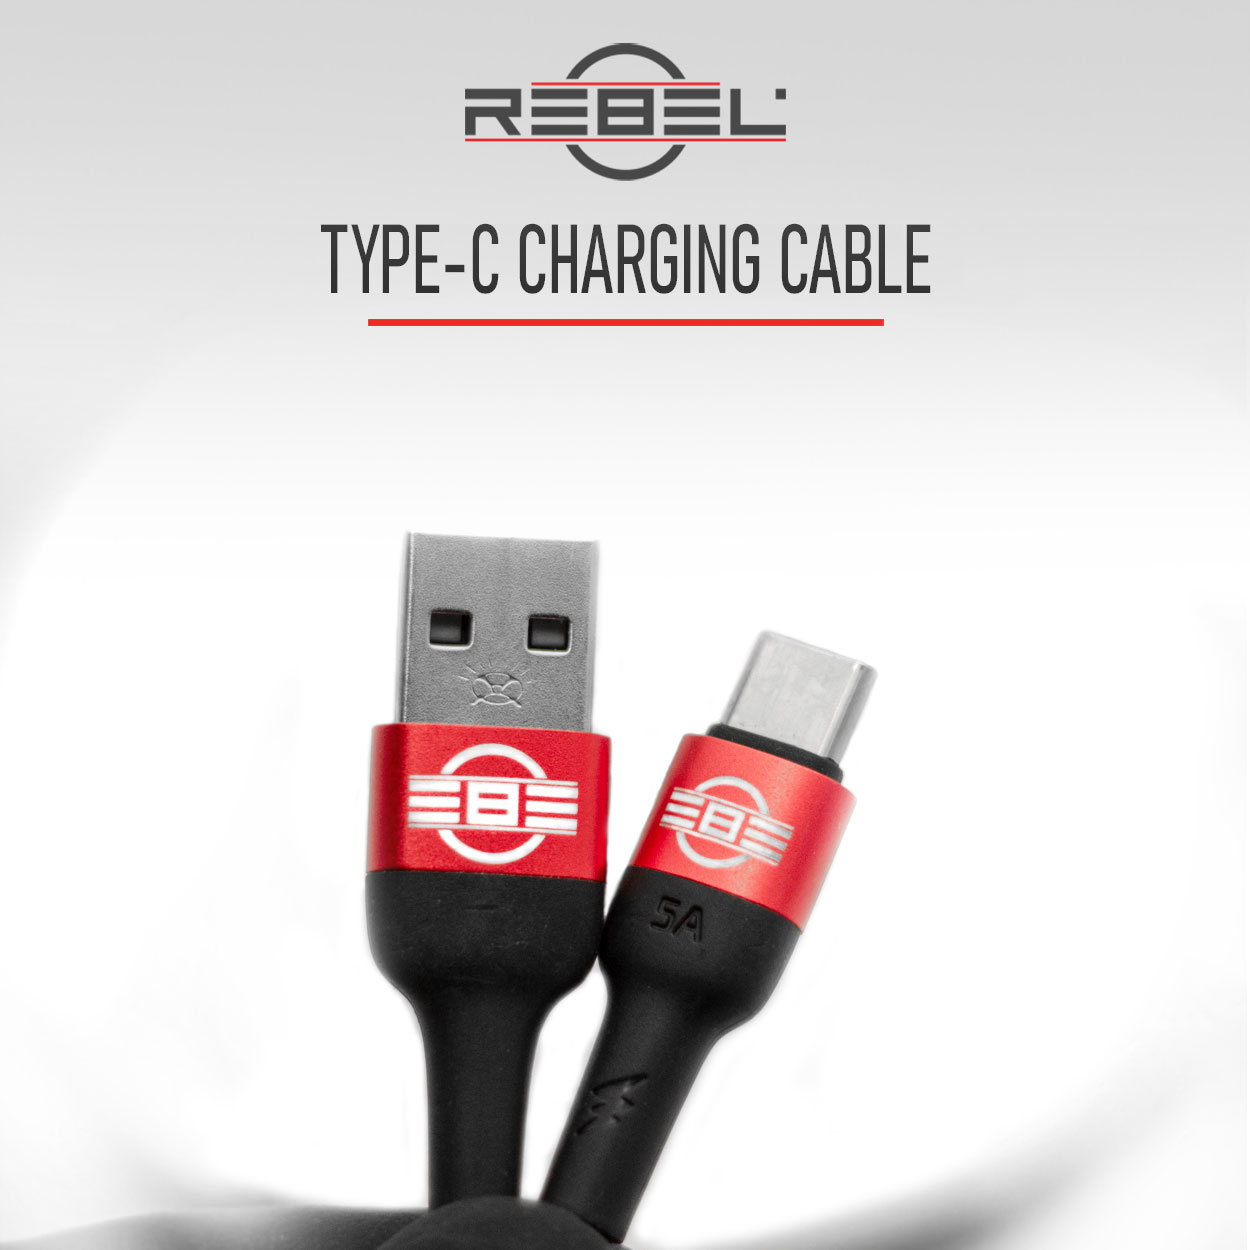 Type C charging cable - Accessories - REBEL